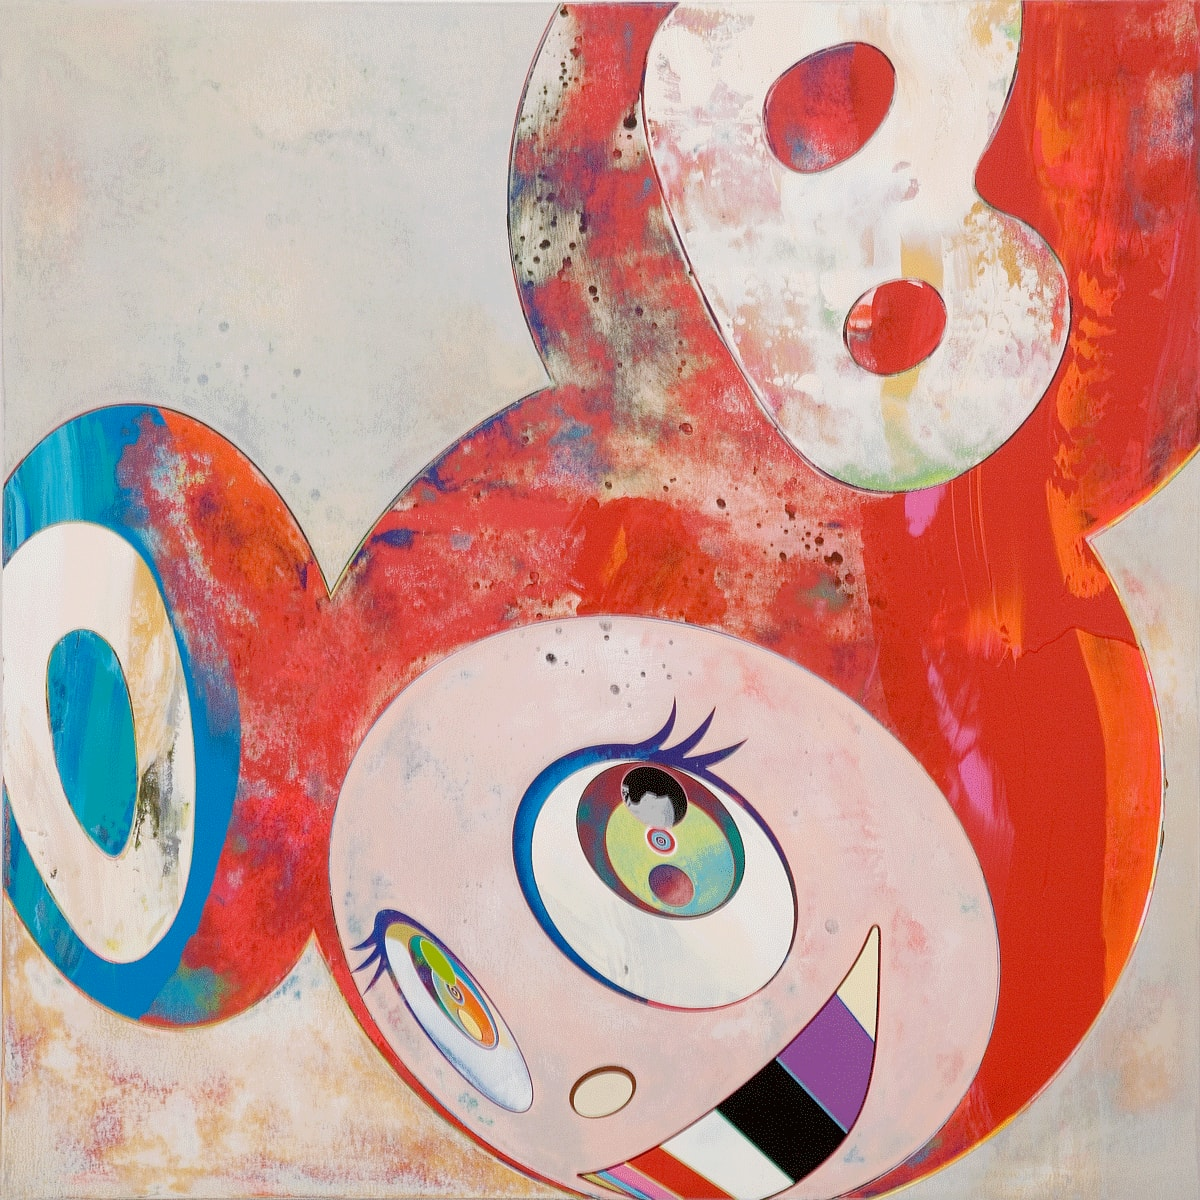 Takashi Murakami, And then, and then , and then (Abstraktes Bild), 2006